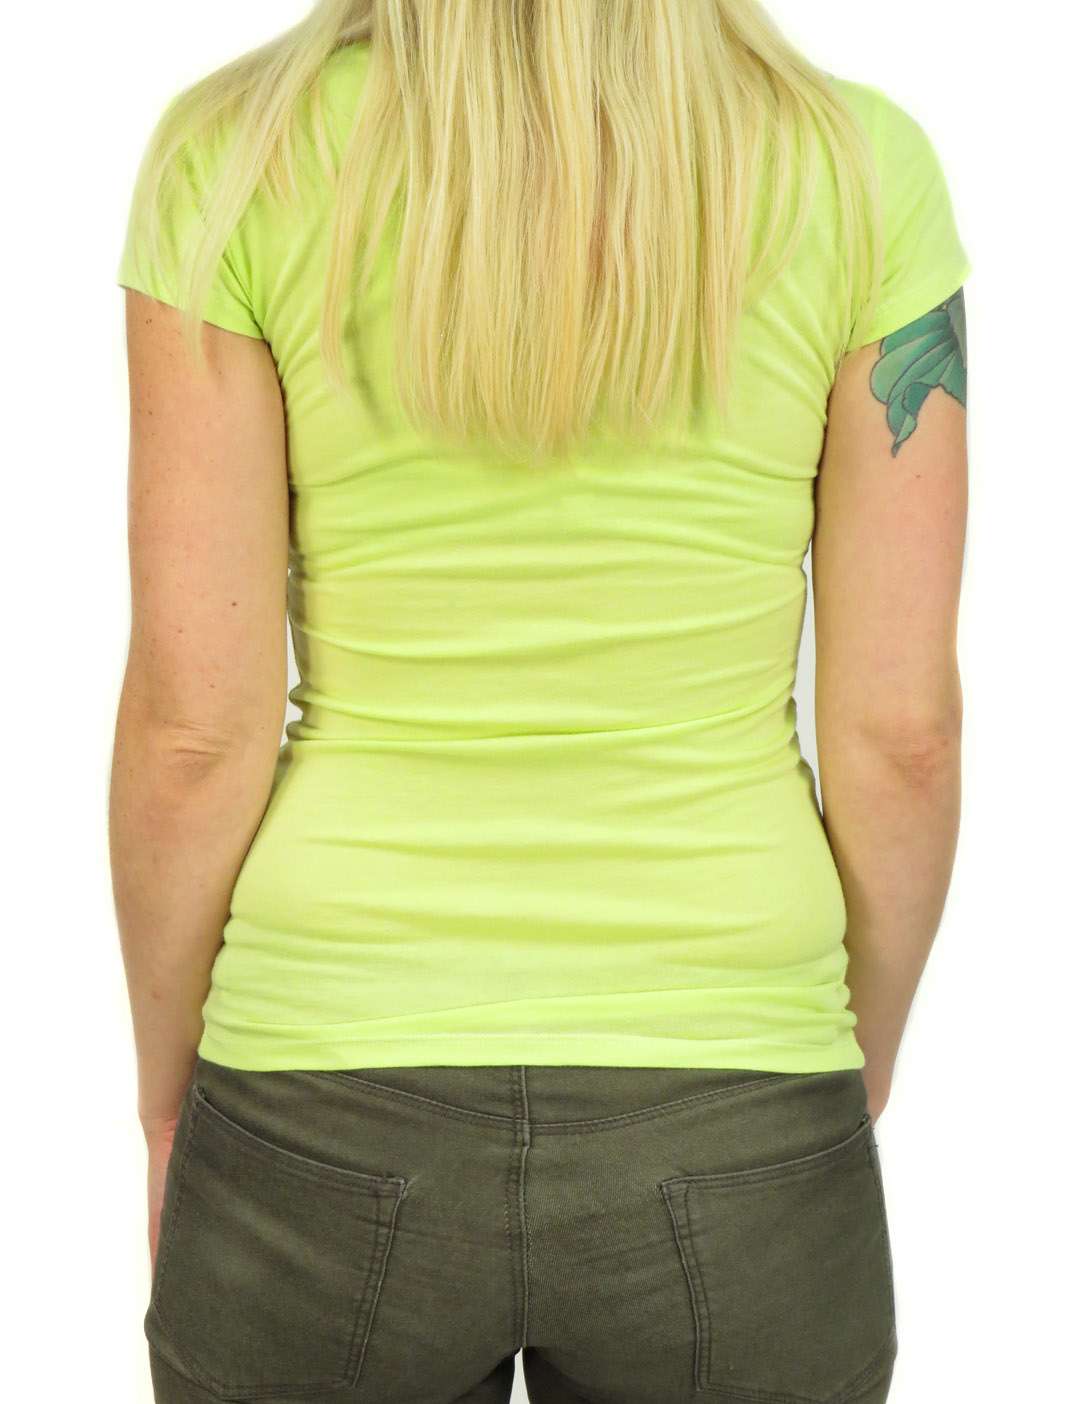 Find that perfect personalized T-Shirt at CustomFun We offer a large selection of colors and designs for any budget!